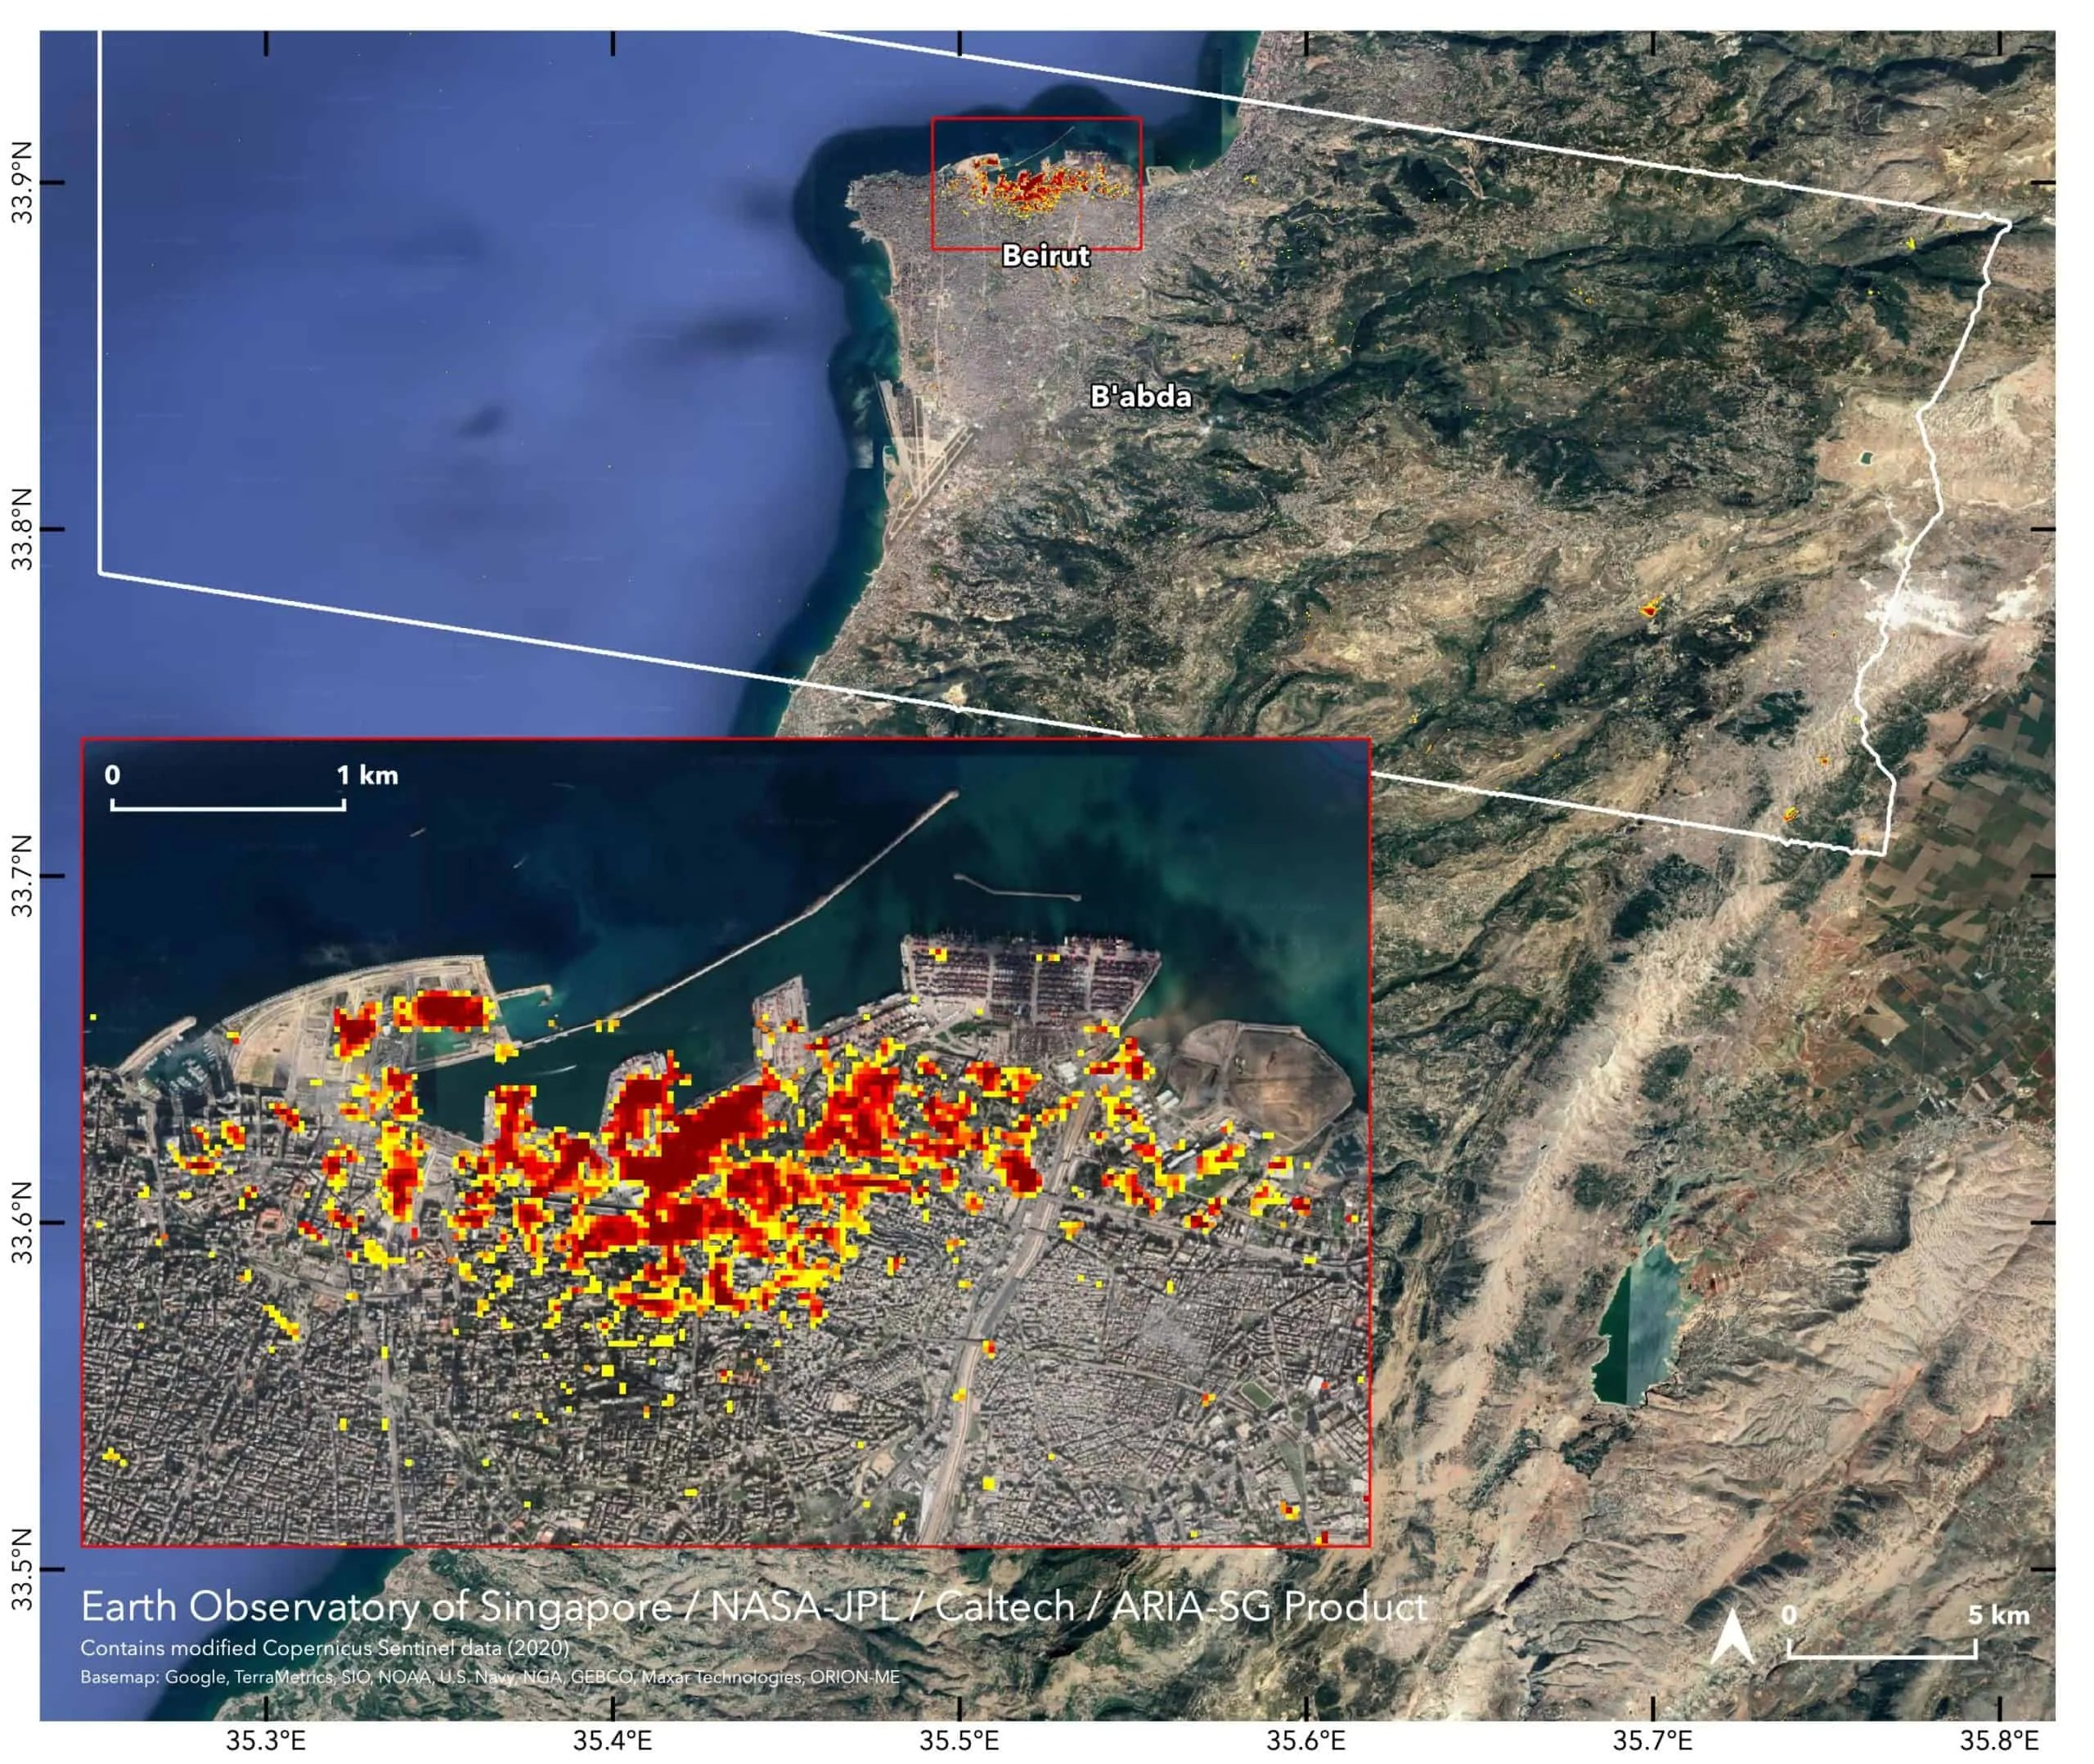 satellite image with indications of where explosions affected Beirut